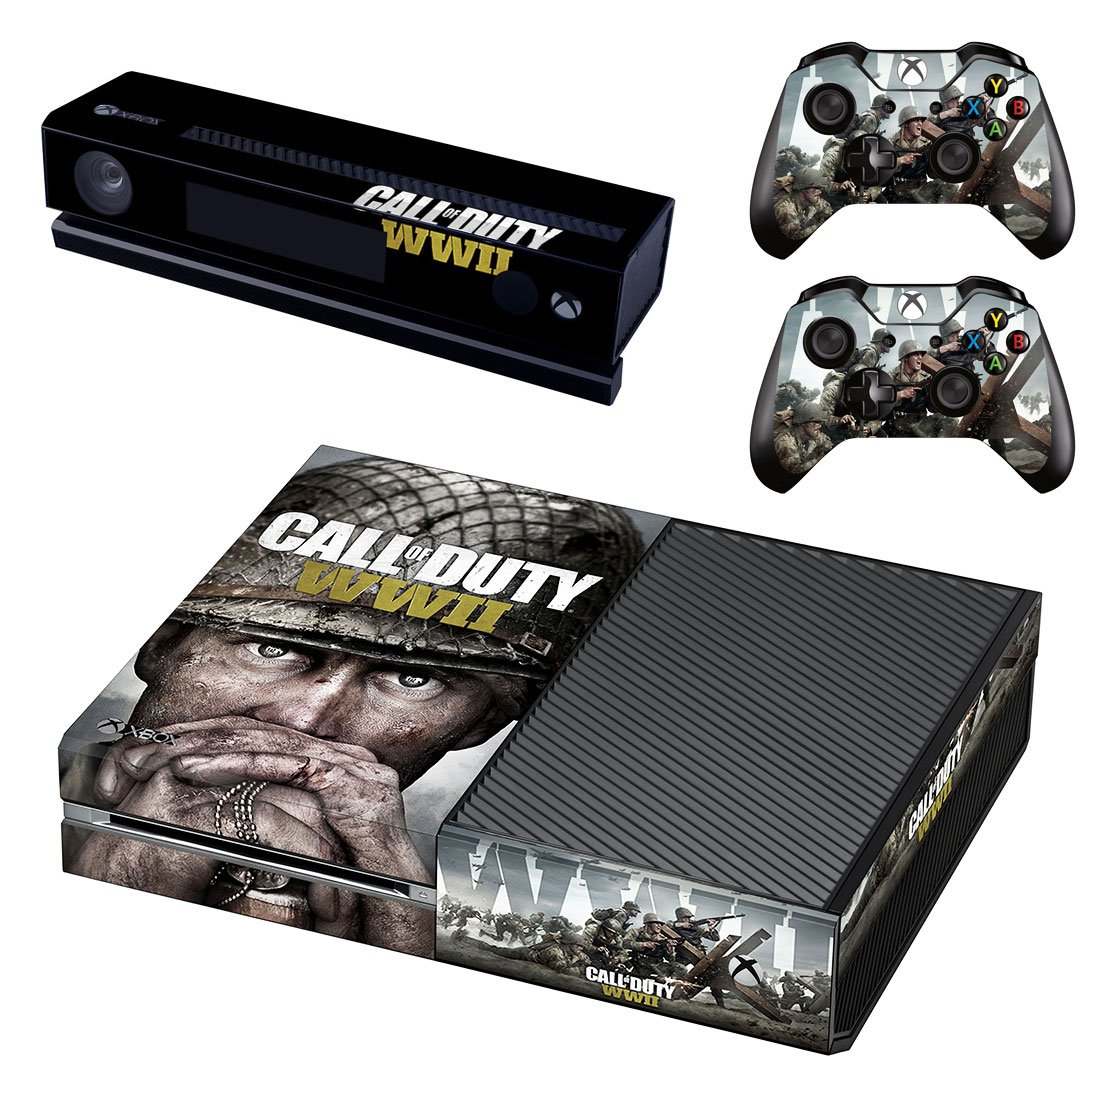 Video Games & Consoles Video Game Accessories Cod Wwii Ww2 Xbox One S Sticker Console Decal Xbox One Controller Vinyl Skin 2 Big Clearance Sale